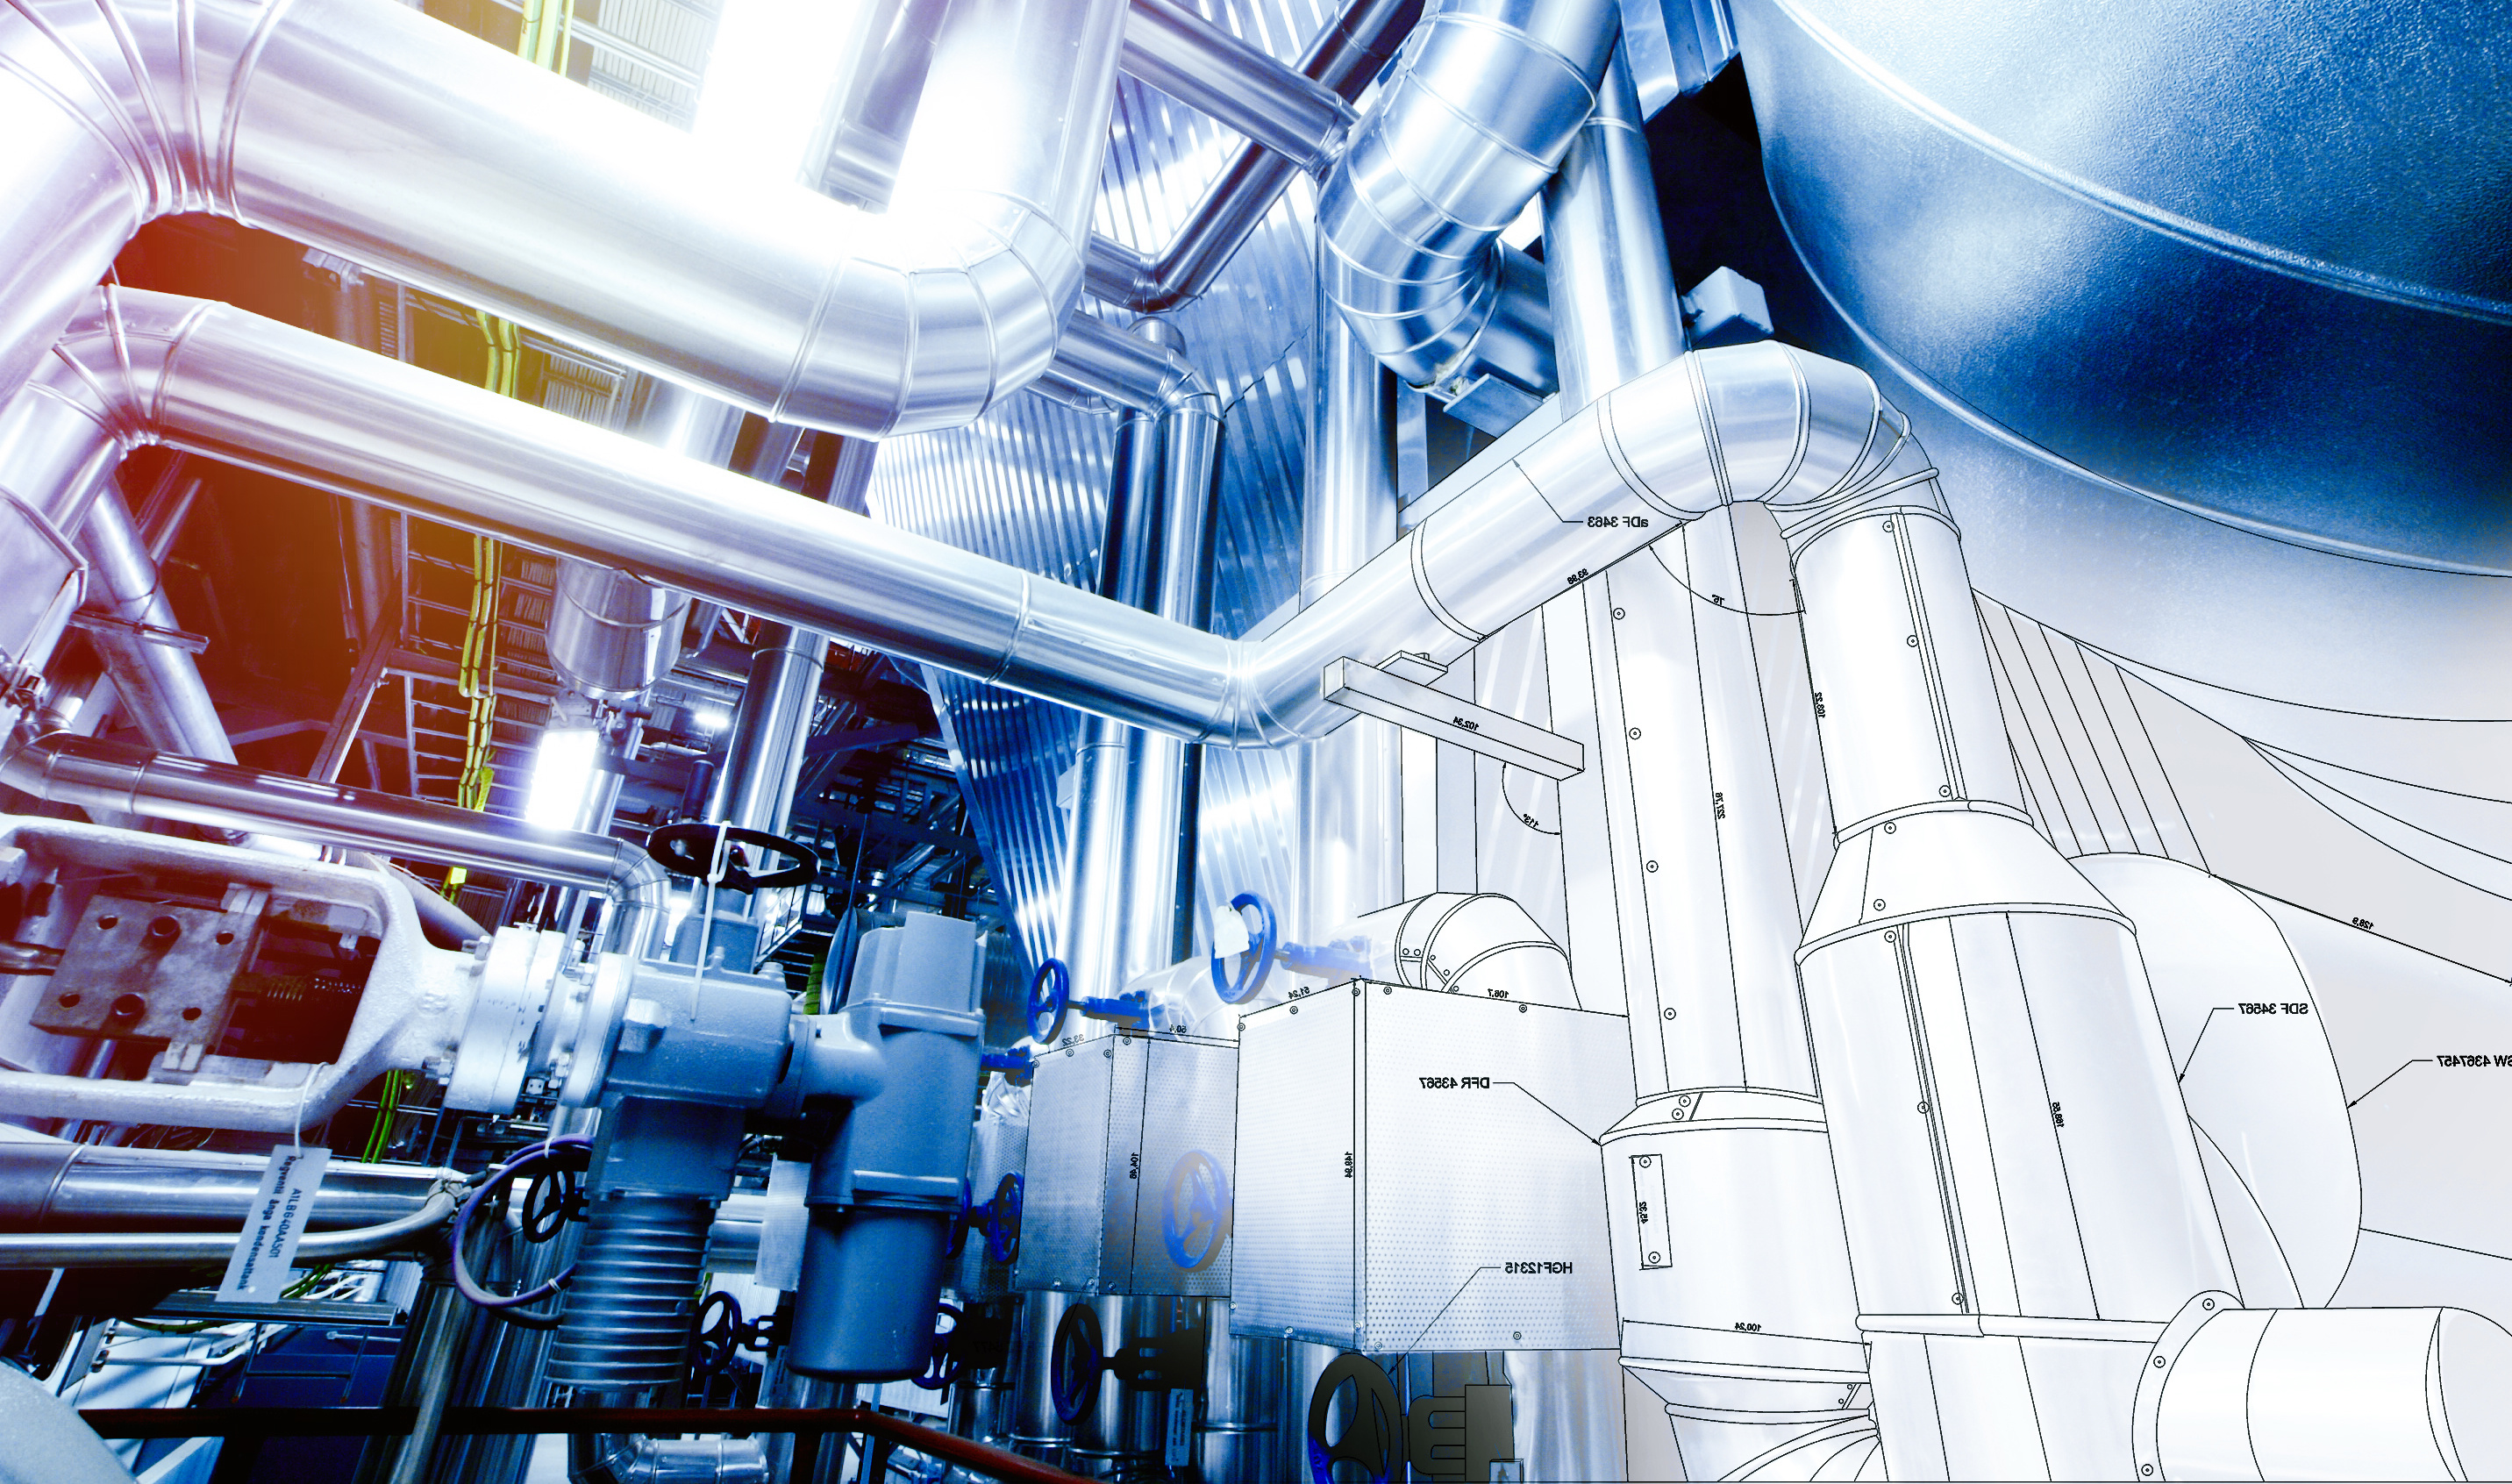 Reducing Noise Emissions in Piping Systems with DSHplus and HyperStudy